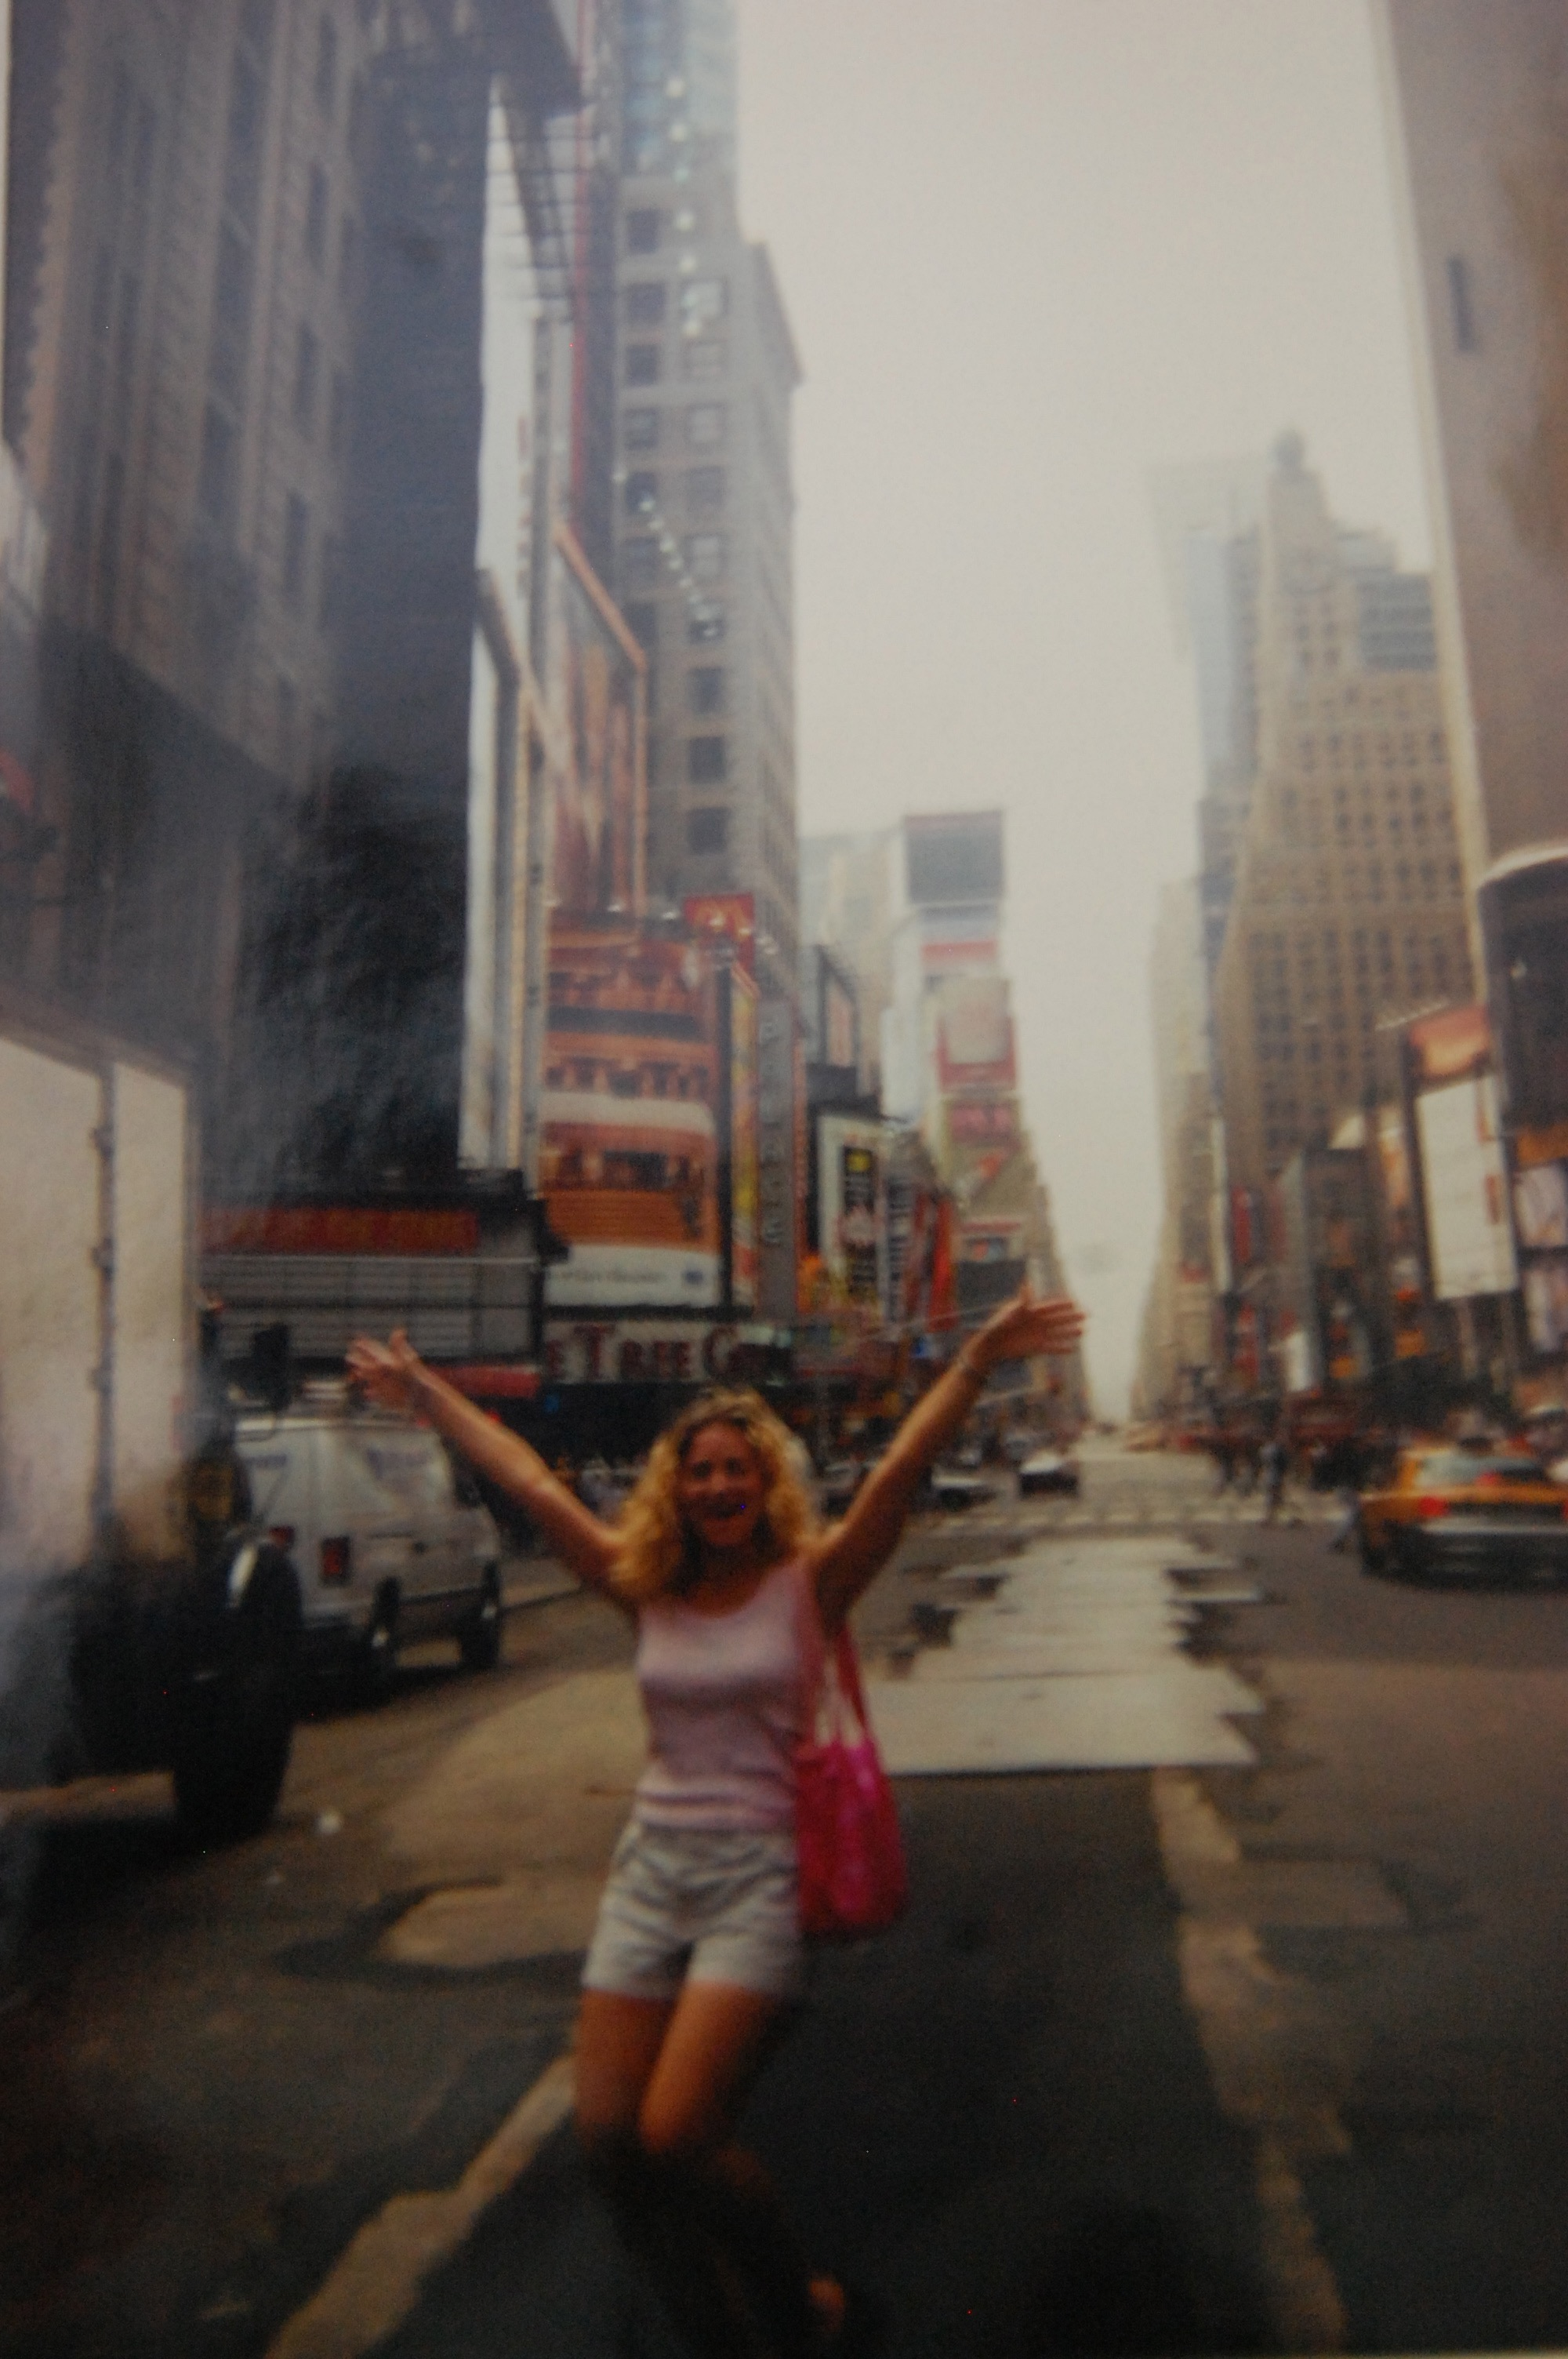 Me in Times Square, 1999, the last time I wore shorts. If my boobs looked like that right now I'd throw a parade in their honor.